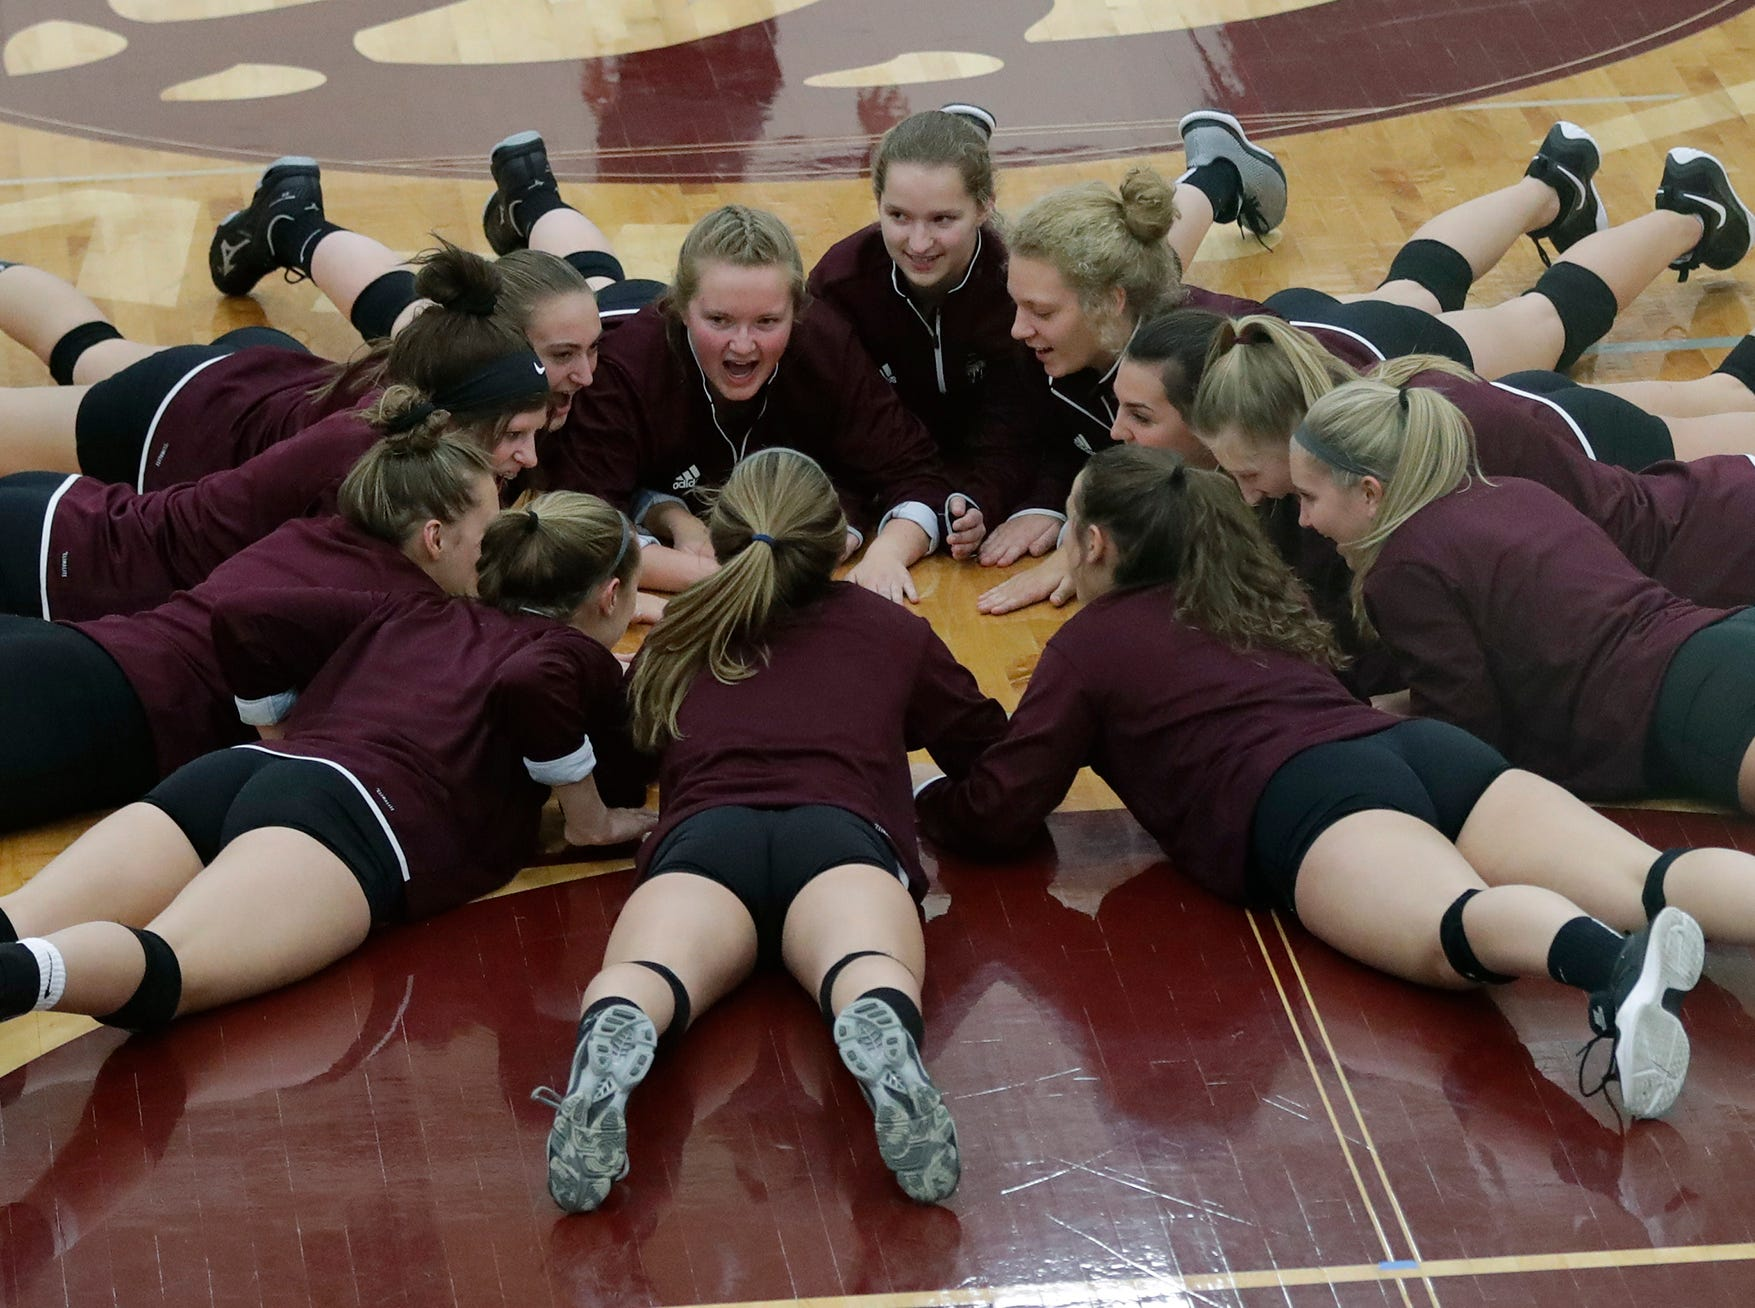 Fox Valley Lutheran High School's players get fired up to play against Omro High School moments before the start of their girls volleyball match Tuesday, Oct. 16, 2018, in Appleton, Wis. 